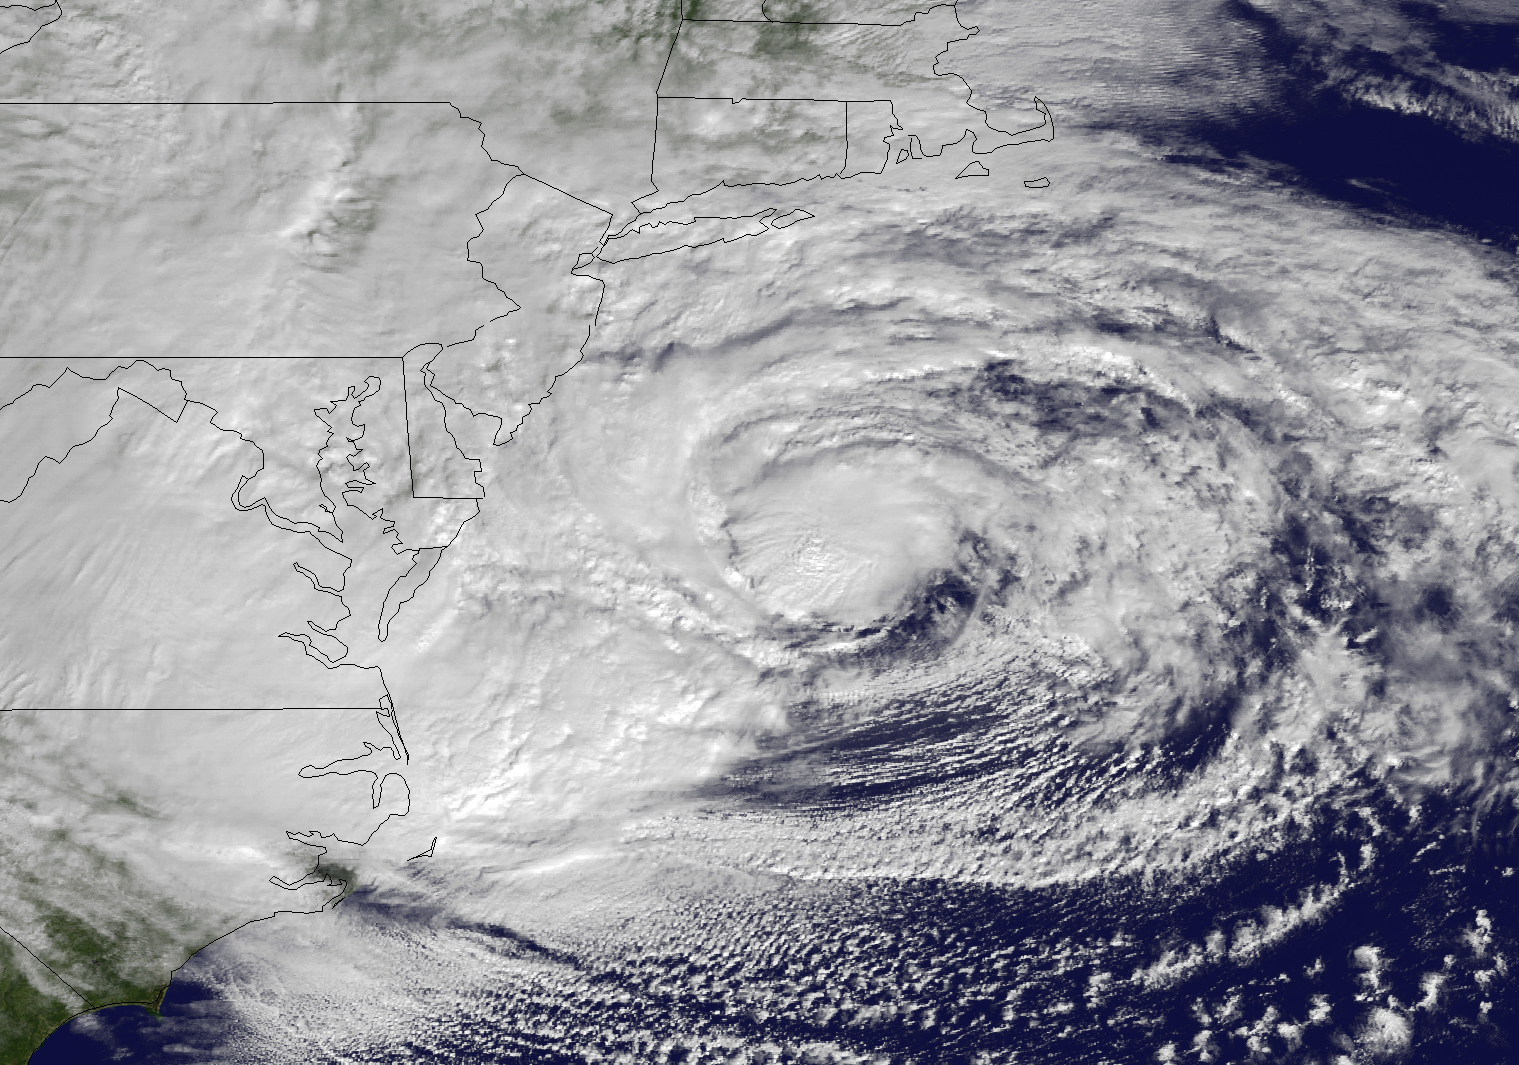 Superstorm Sandy by Uncredited.